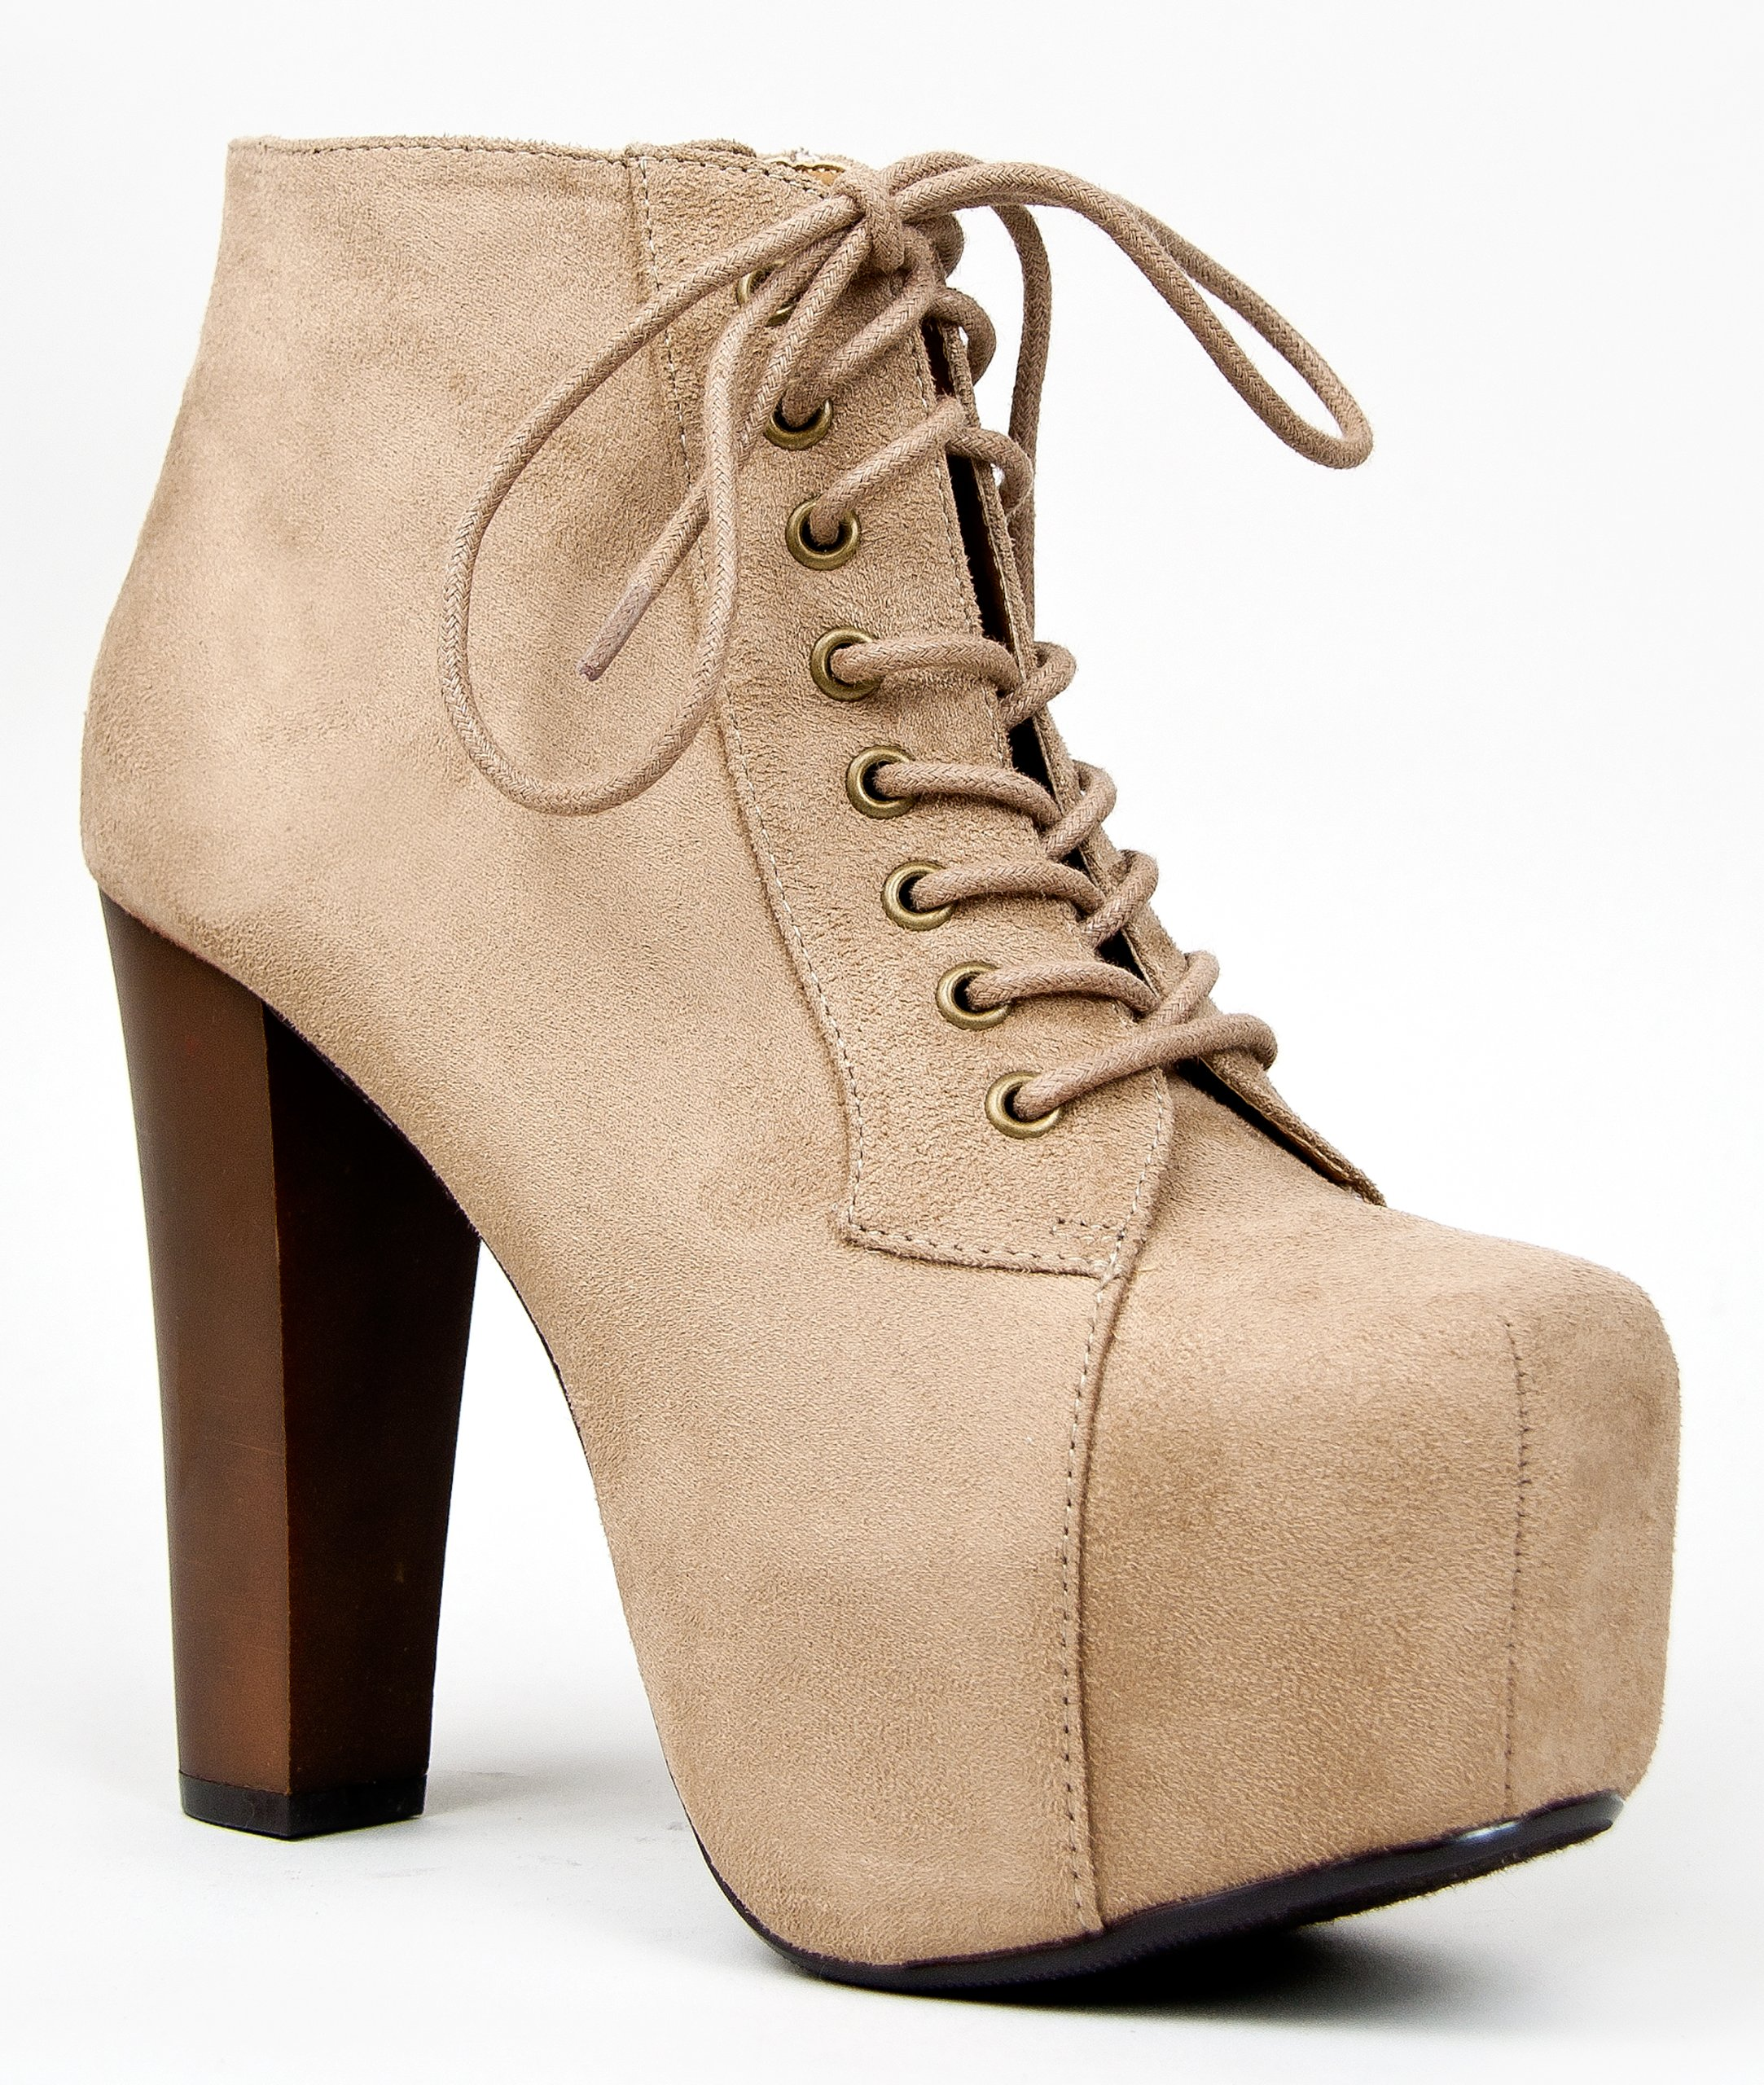 Speed Limit 98 ROSA Designer Inspired Lita Style Chunky High Heel Lace Up Ankle Boot Bootie, Taupe IMSU, 7 B(M) US